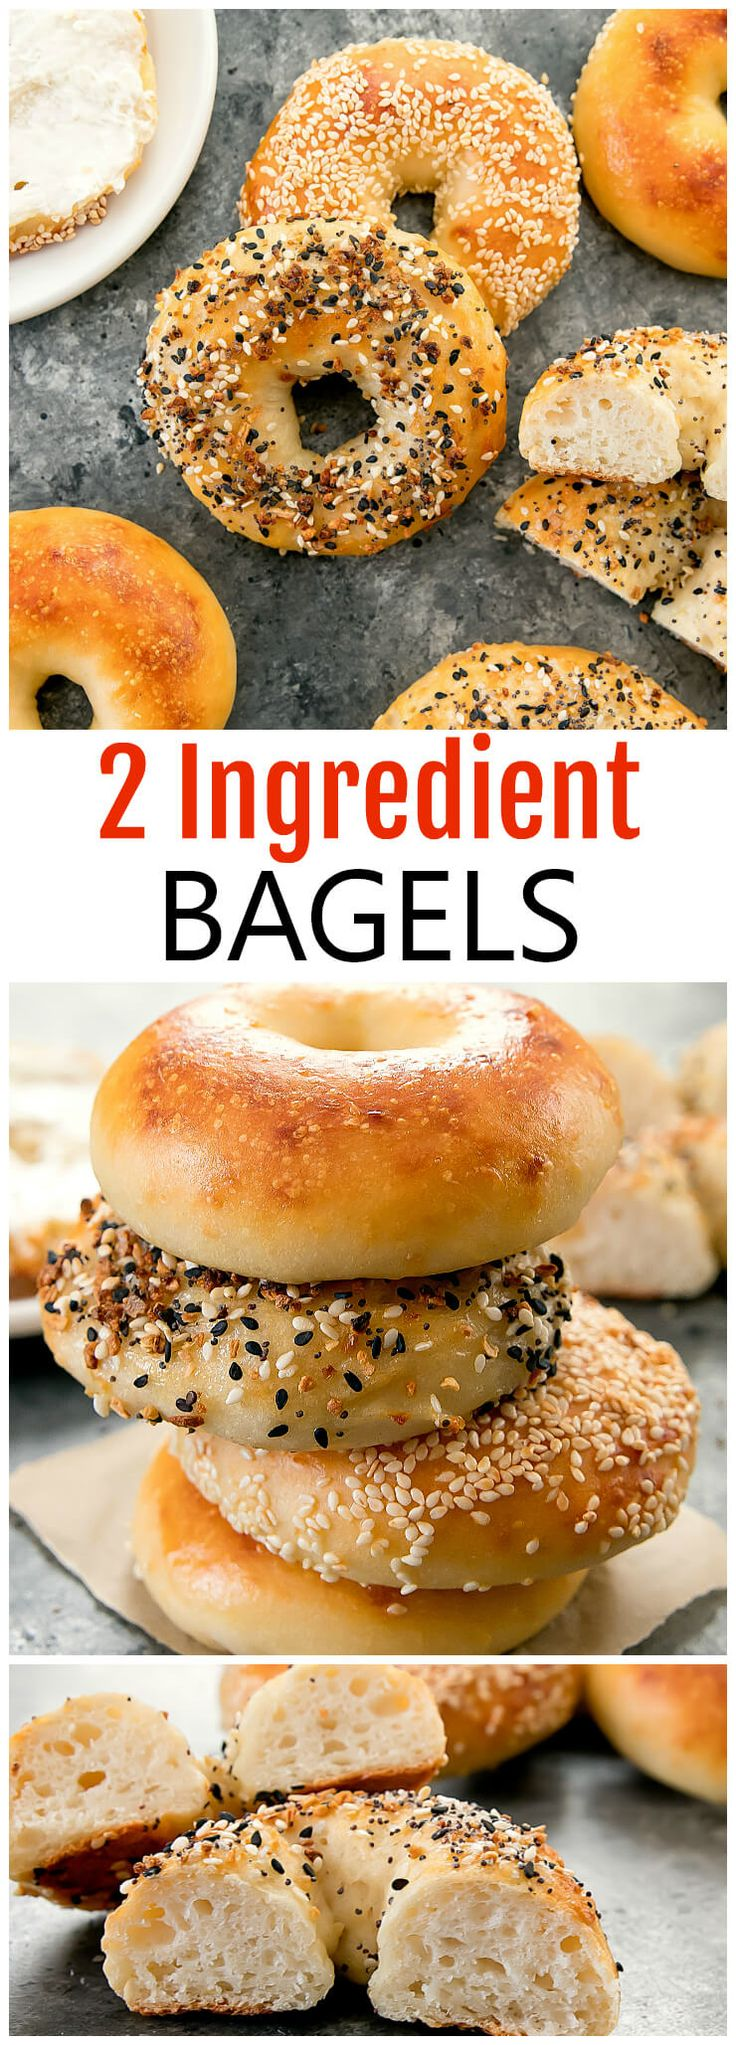 2 Ingredient Bagels. No yeast or proofing! Homemade chewy bagels ready in less than an hour.